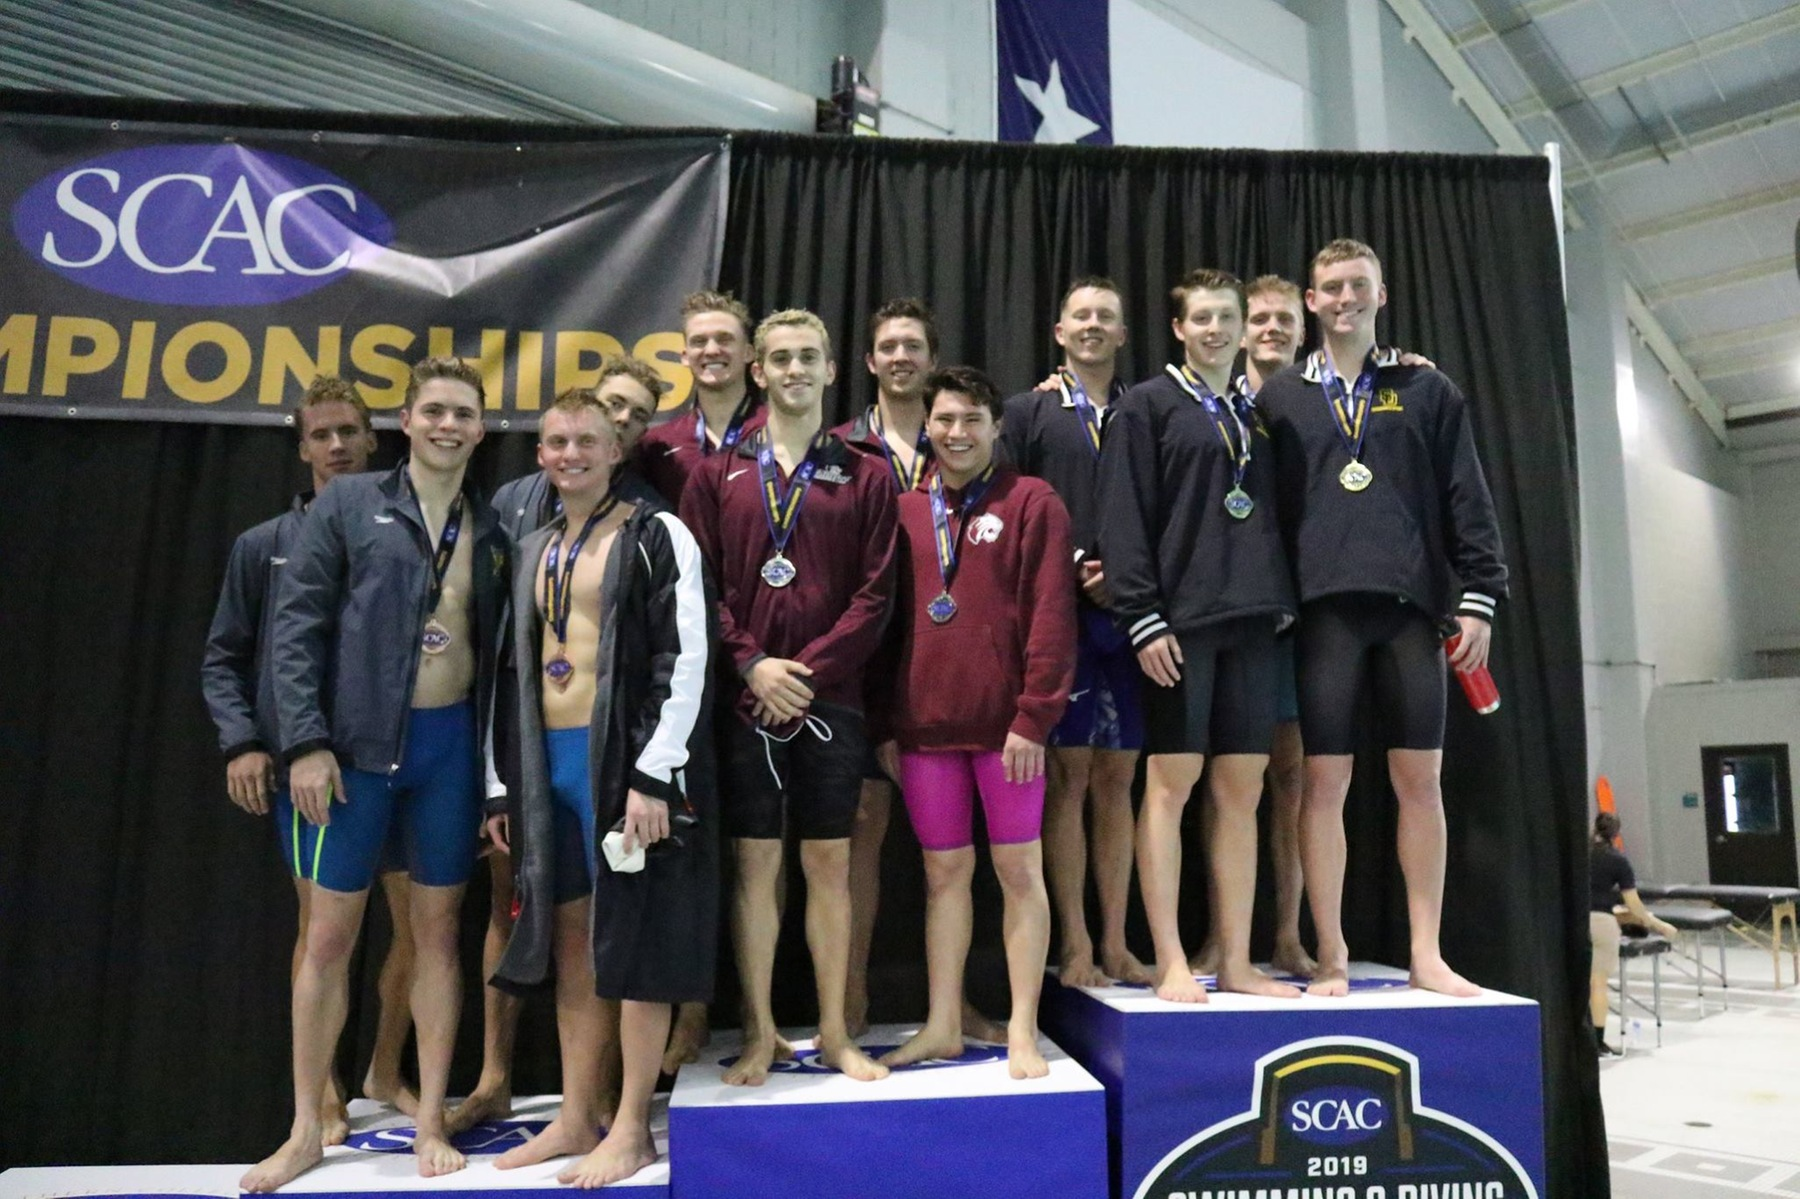 Men's Swimming Wins Both Relays in First Day of SCAC Championship Meet